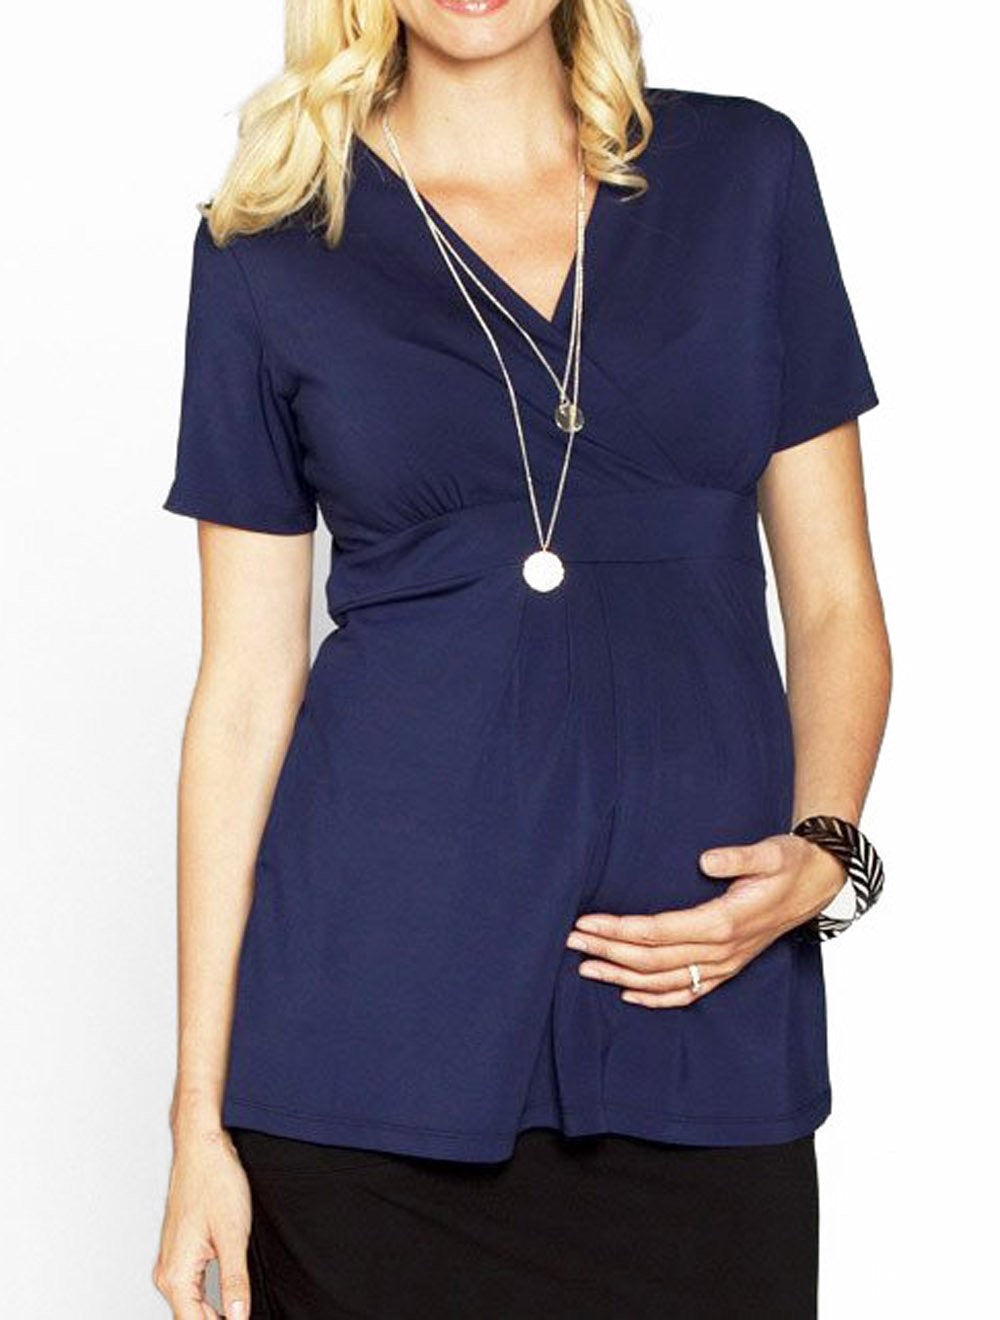 Angel Maternity Crossover Short Sleeve V-Neck Work Top - Navy